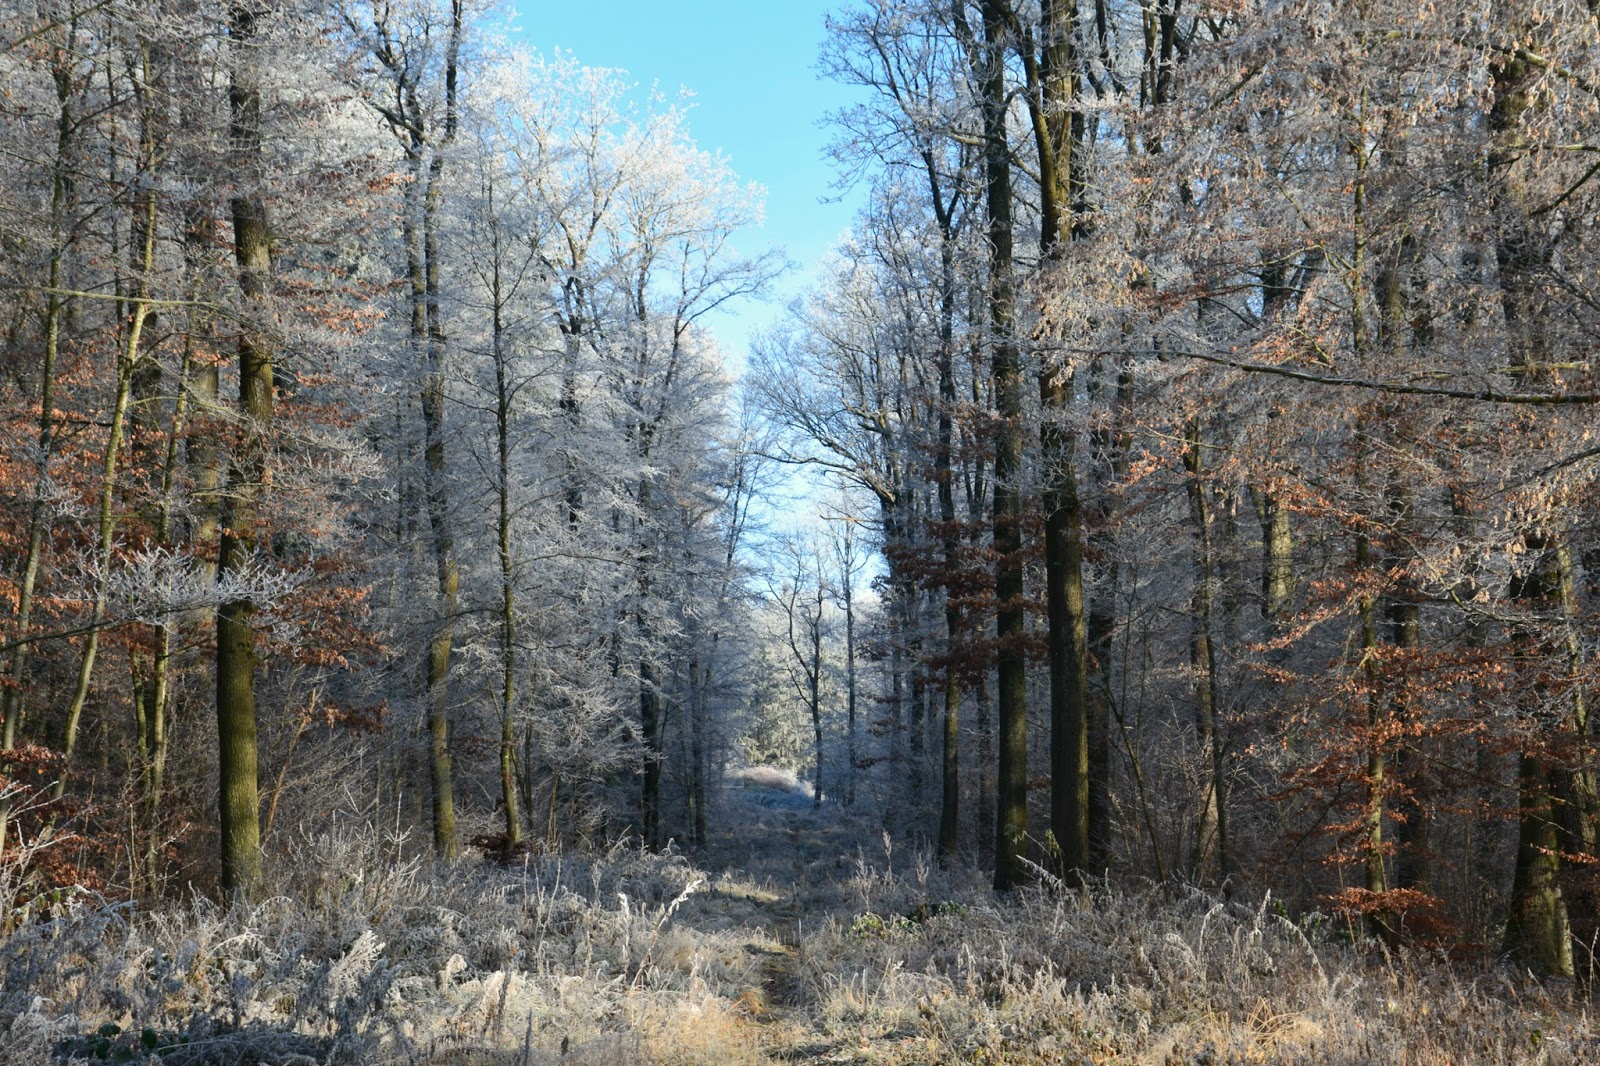 Walk in a forest with frost all over the trees and a blue sky